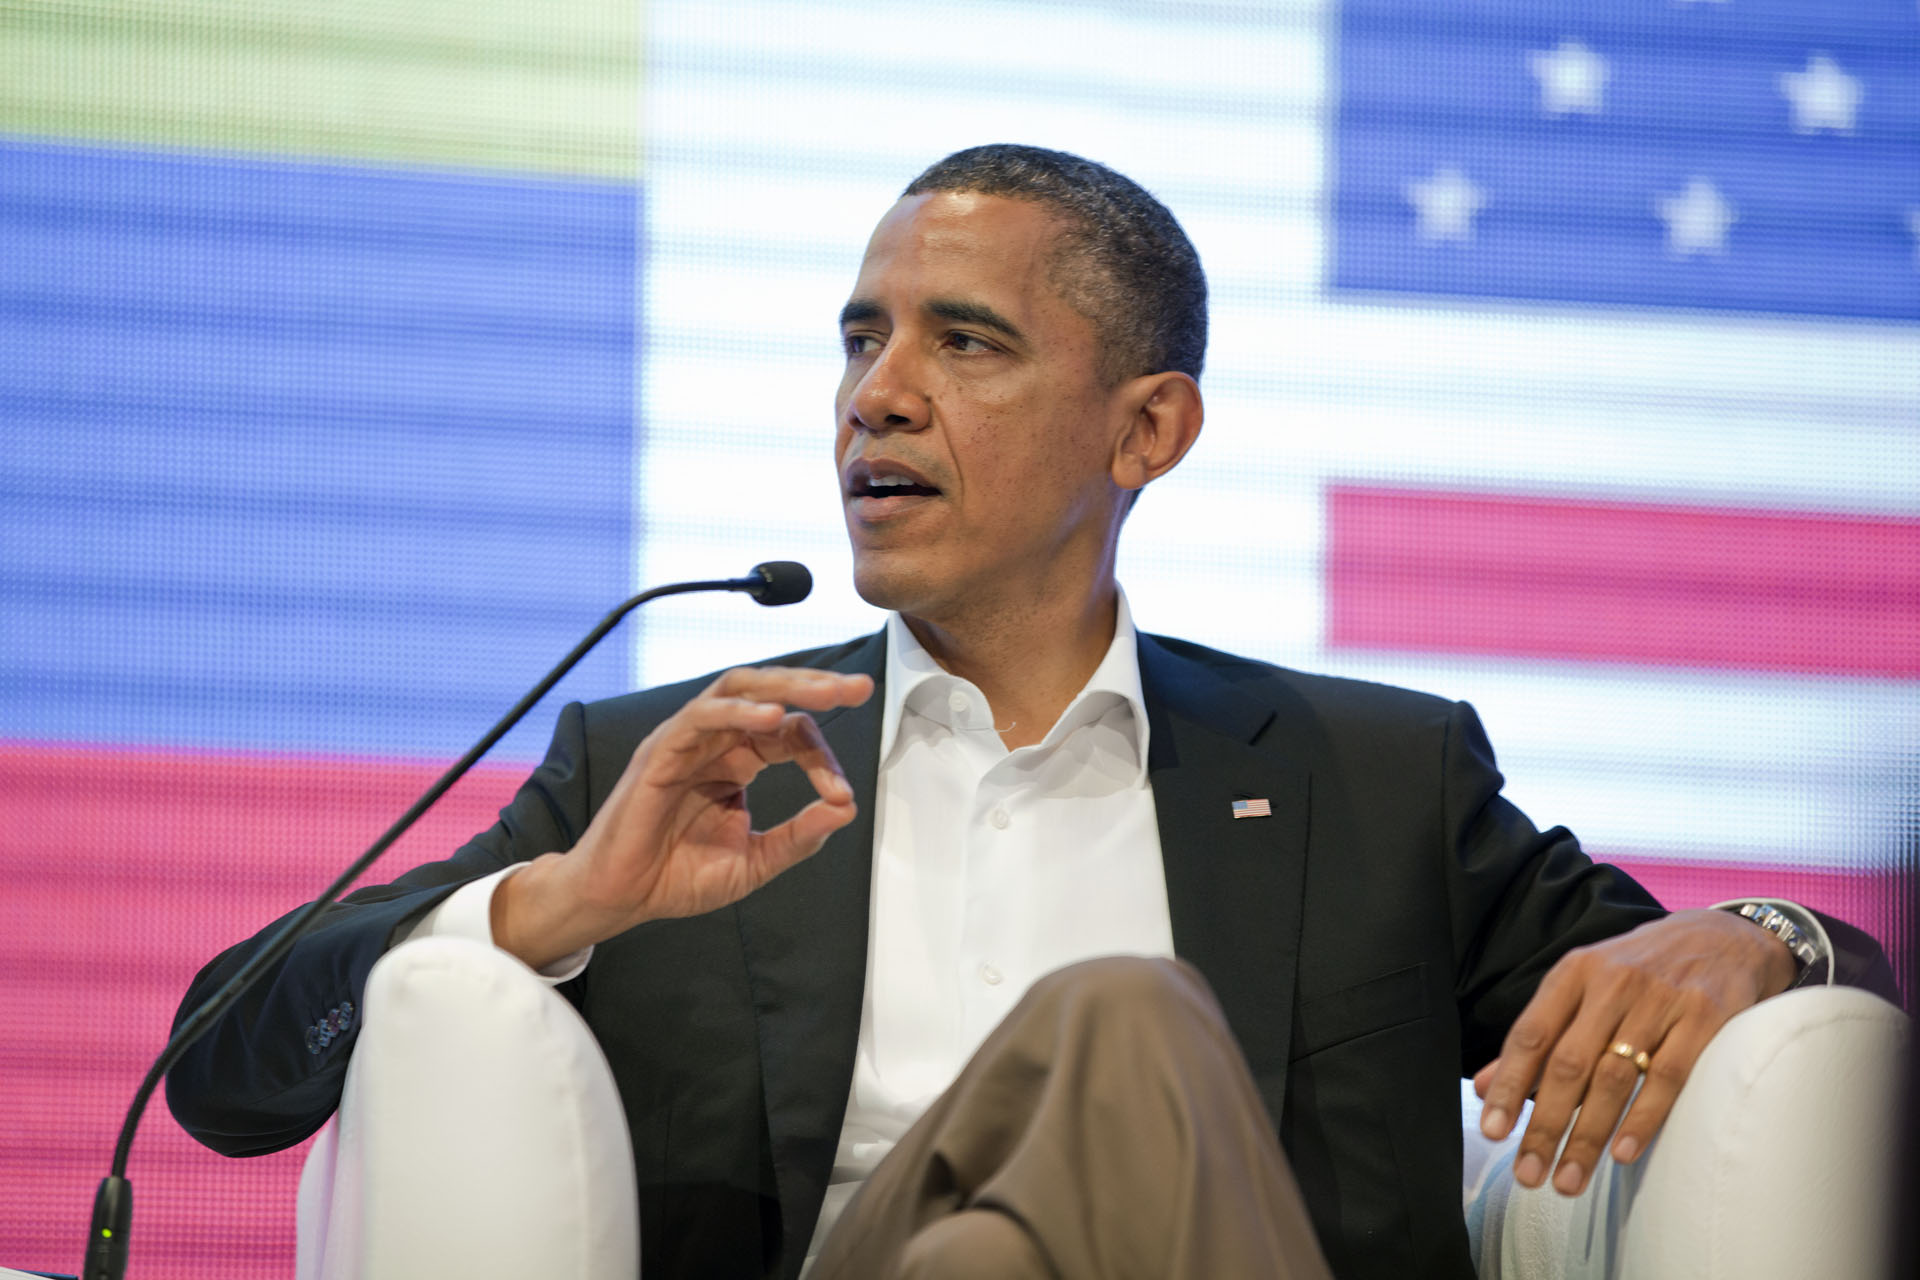 President Barack Obama participates in the CEO Summit of the Americas panel discussion (April 14, 2012)